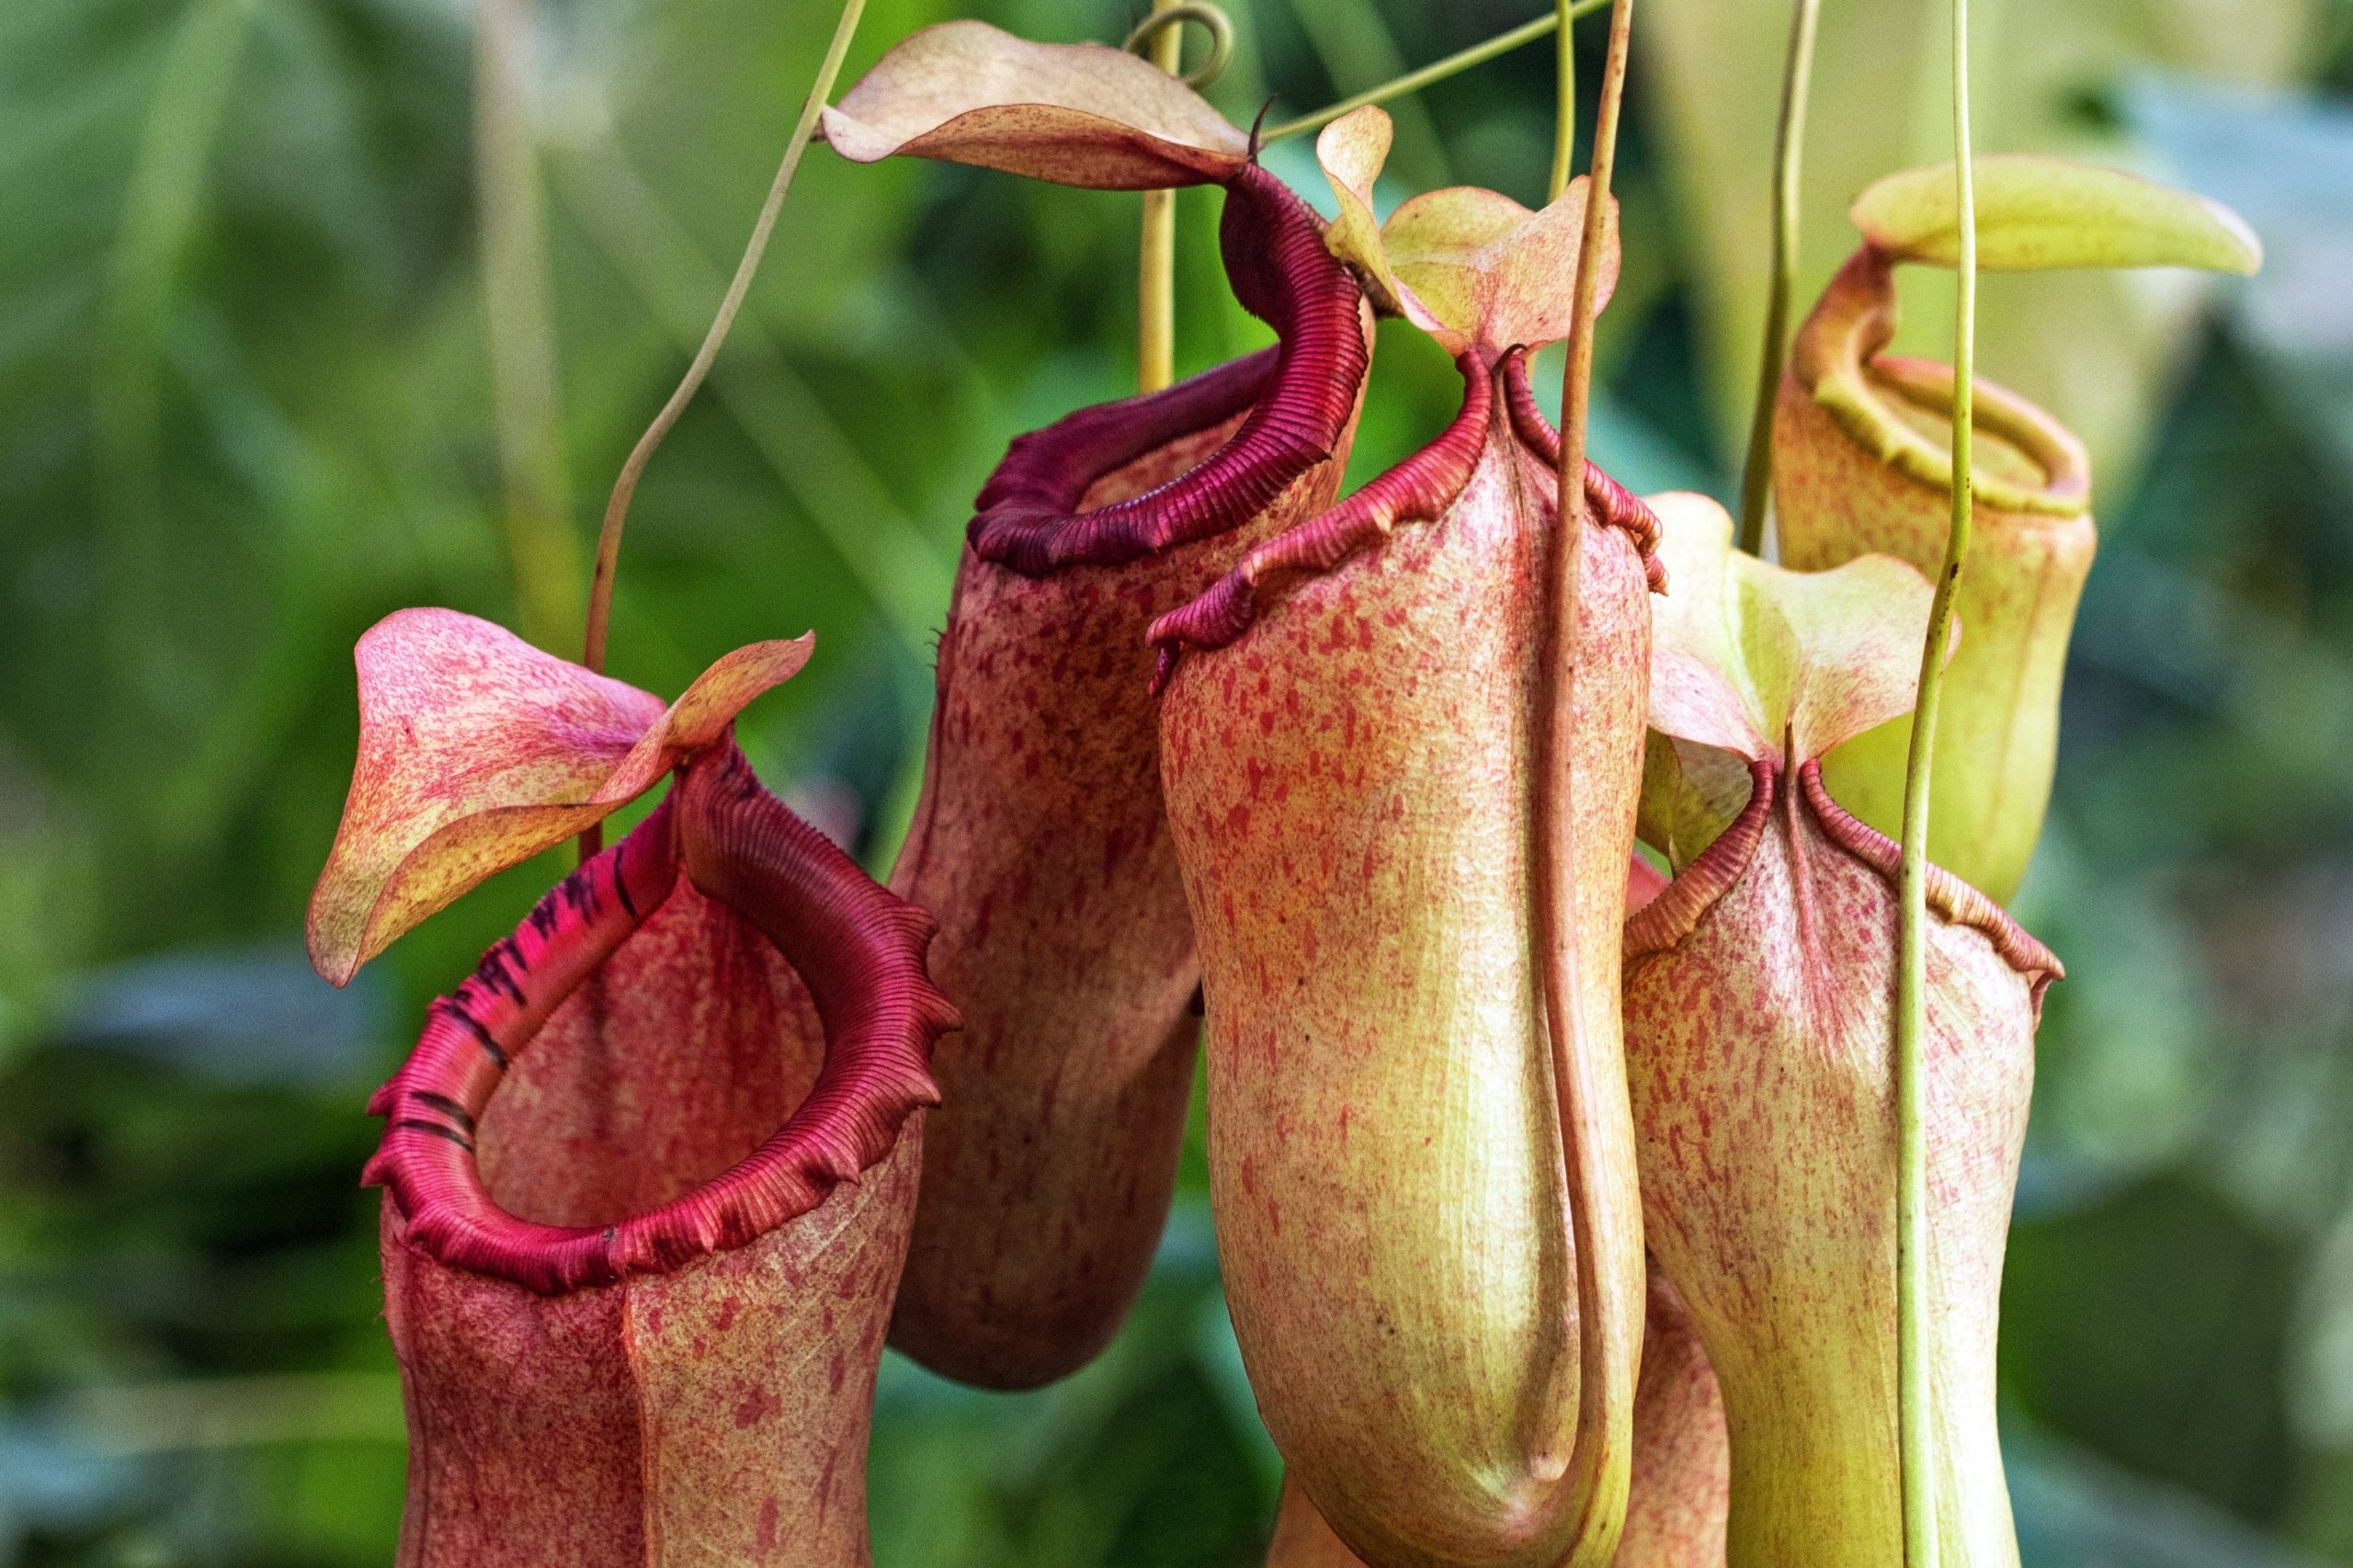 Check out the foul-smelling Rafflesia and insect-eating pitcher plants